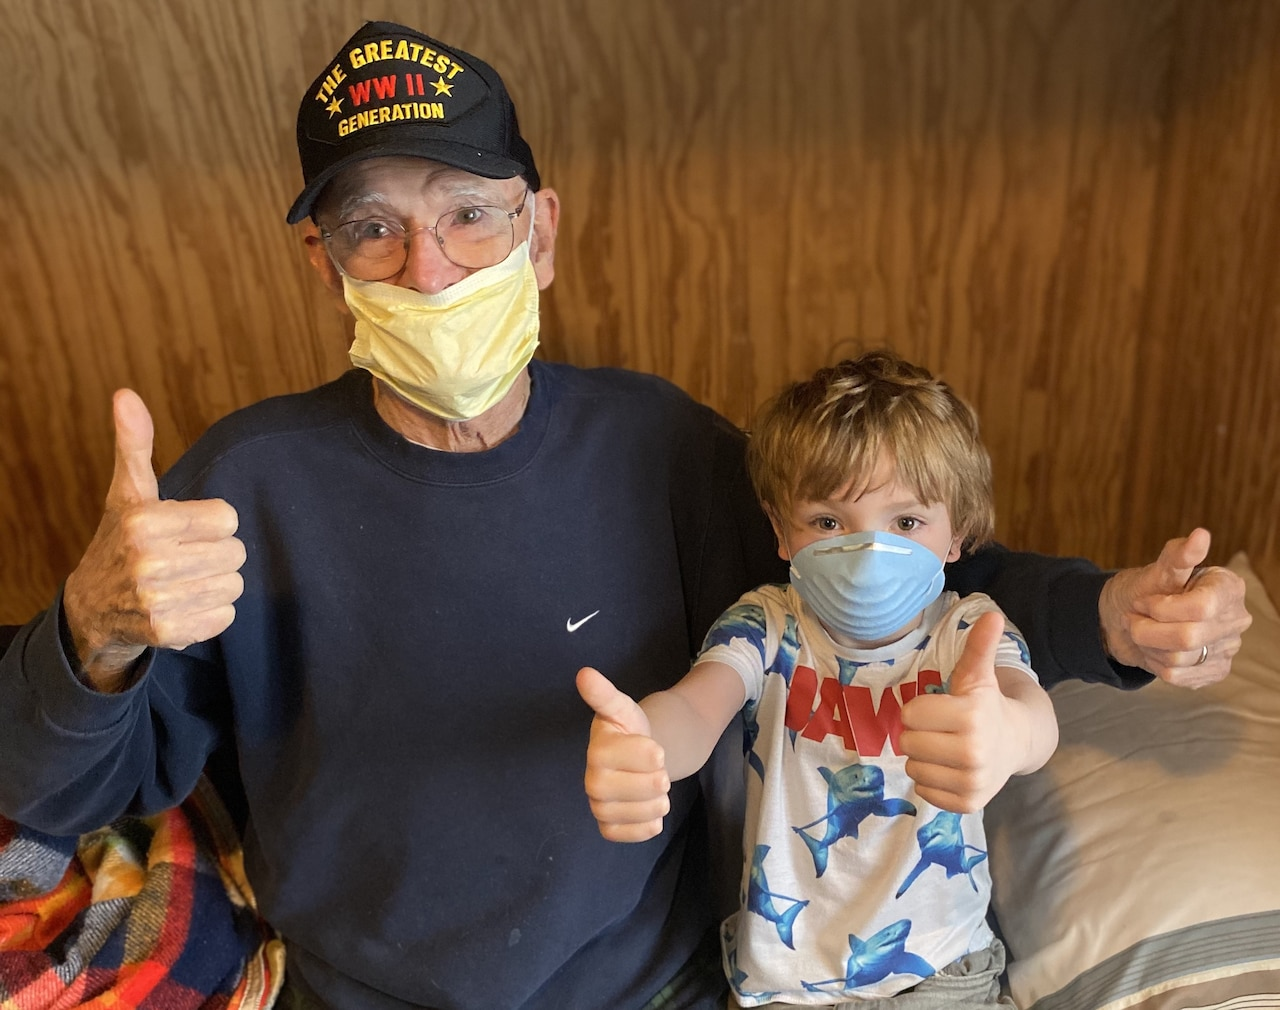 An elderly man and a small boy wearing medical masks give four thumbs up while sitting on a bed.